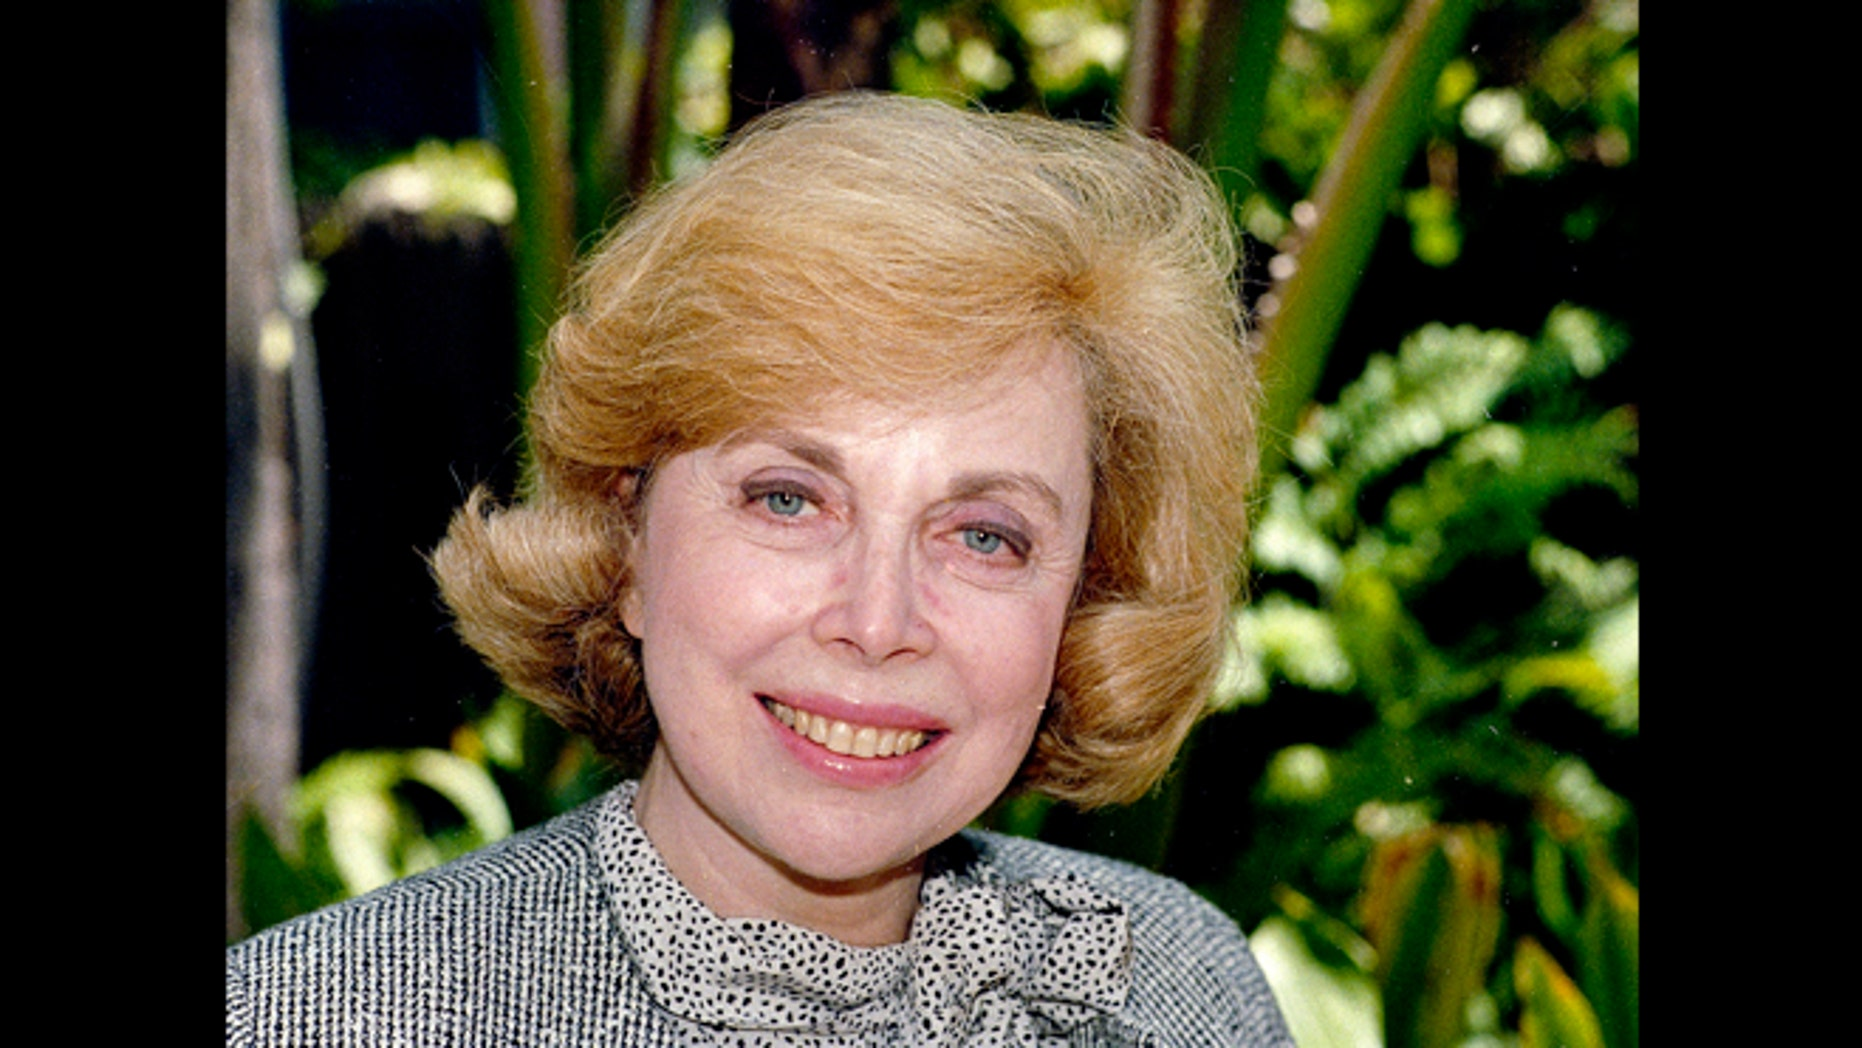 """In this Sept. 1, 1987 file photo, Dr. Joyce Brothers takes a break from a busy schedule in Los Angeles to talk about her upcoming television series, """"The Psychology Behind the News."""" Brothers died Monday, May 13, 2013, in New York City, according to publicist Sanford Brokaw. She was 85."""